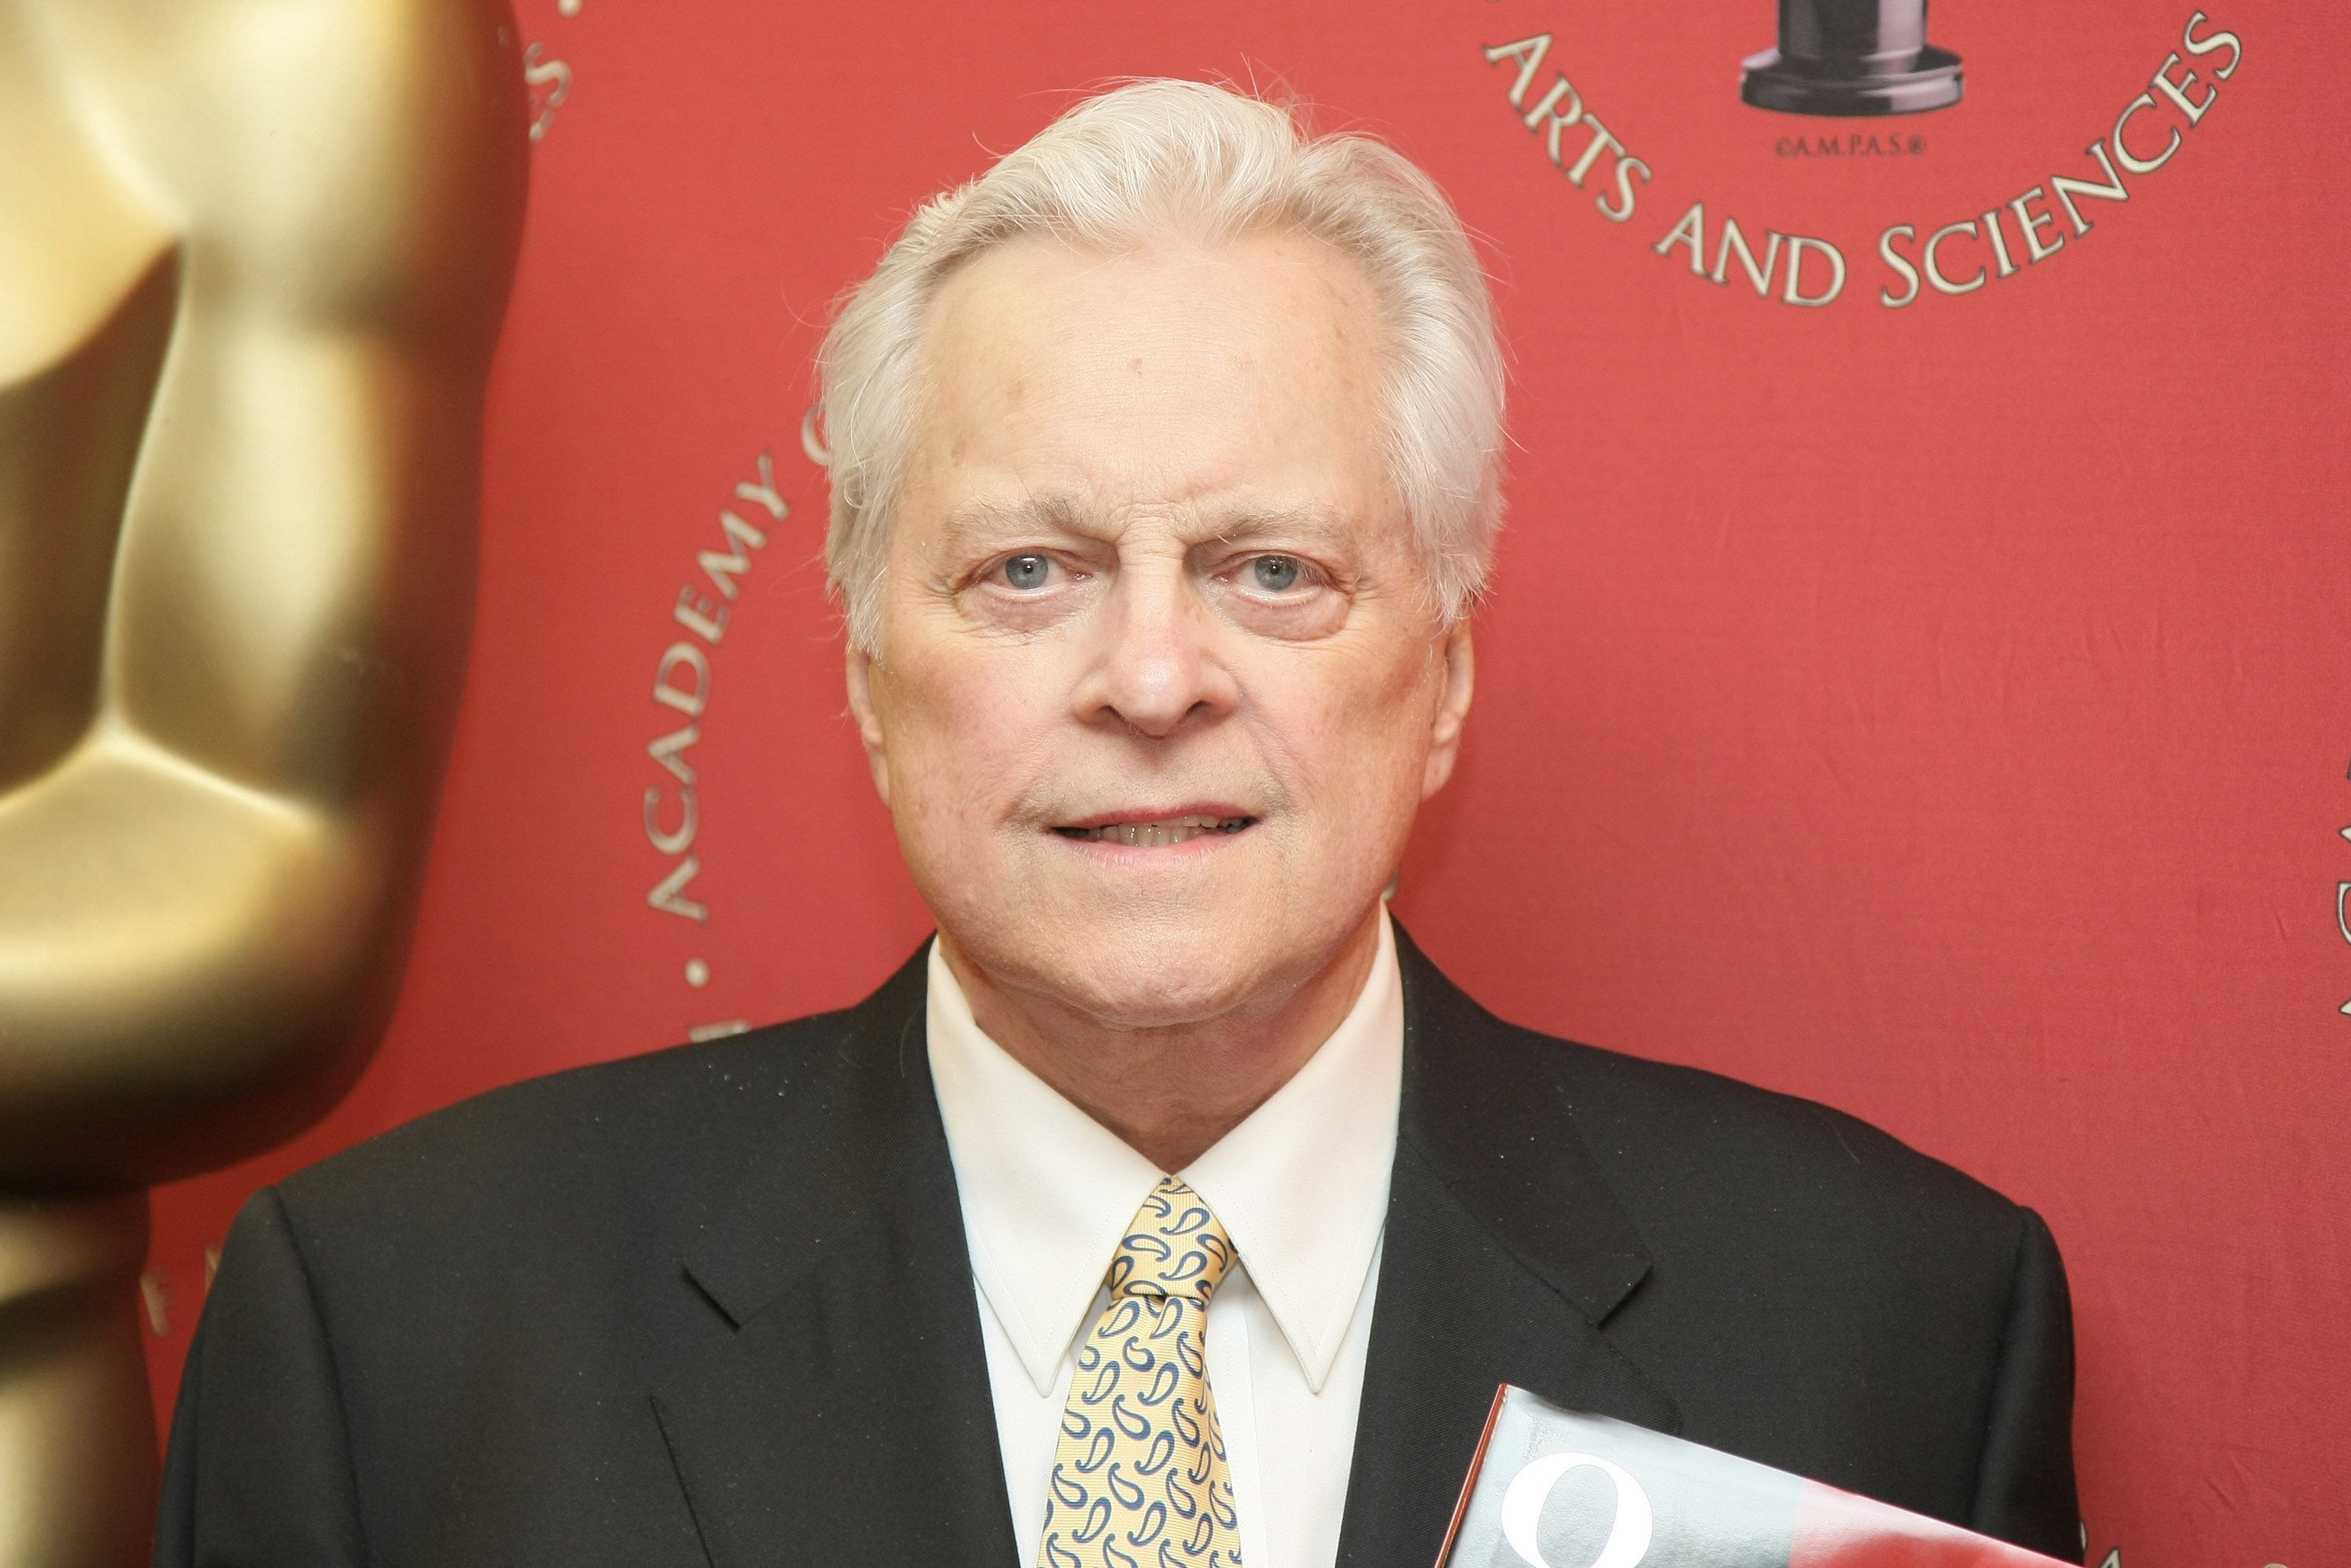 NEW YORK - FEBRUARY 09:  Official biographer of the Academy Awards Robert Osborne poses for a photograph at the book signing of '80 Years of the Oscar: The Official History of the Academy Awards' at Borders Columbus Circle on February 9, 2009 in New York City.  (Photo by Neilson Barnard/Getty Images)